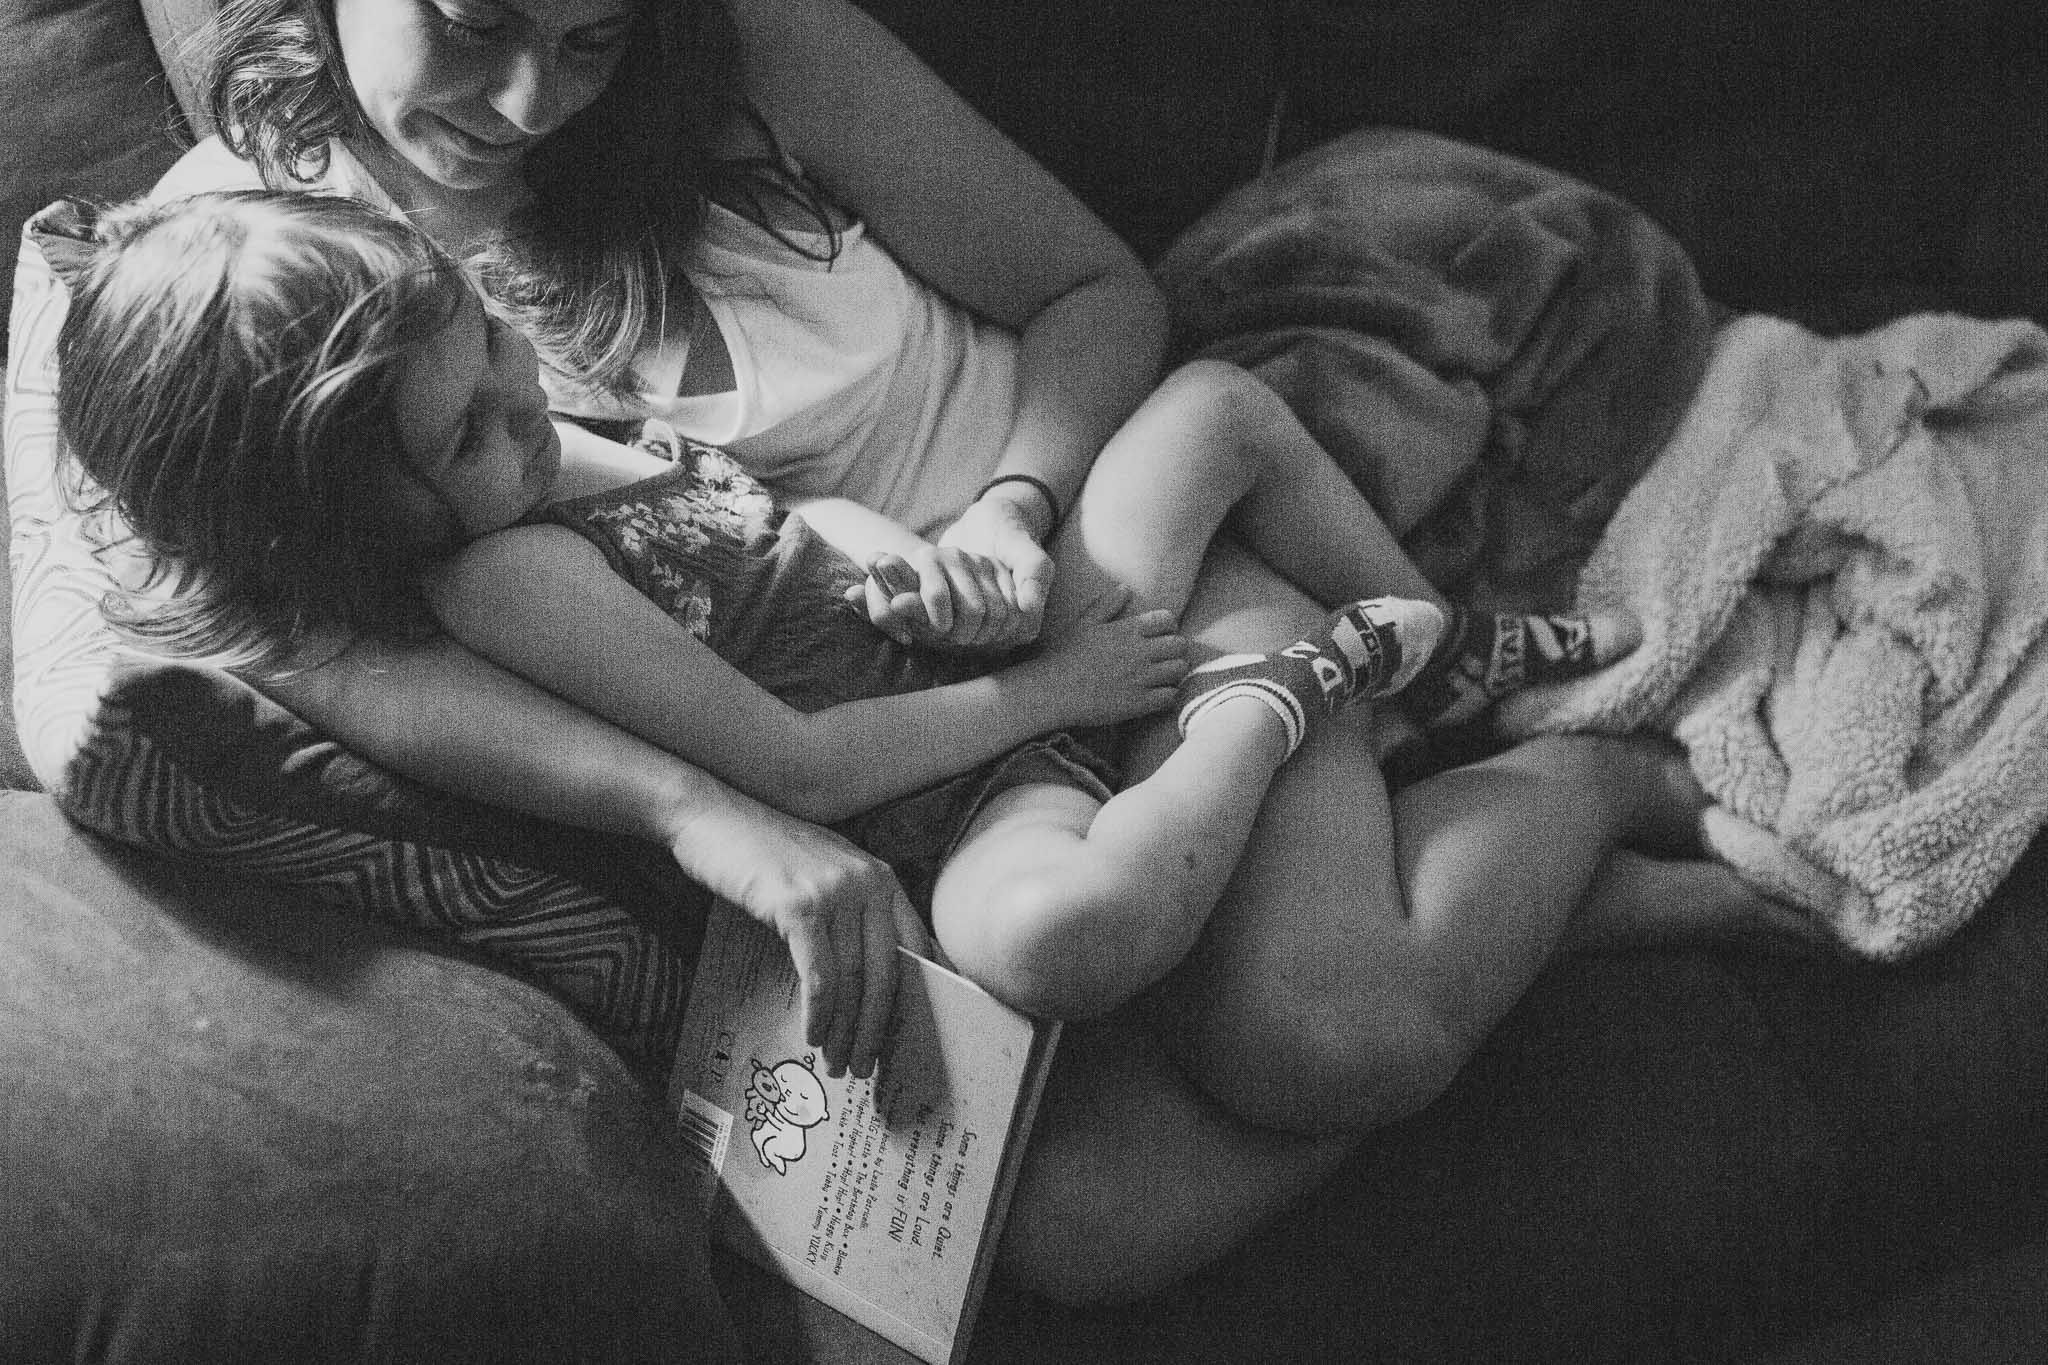 black and white; mother and daughter cuddle together and read a book